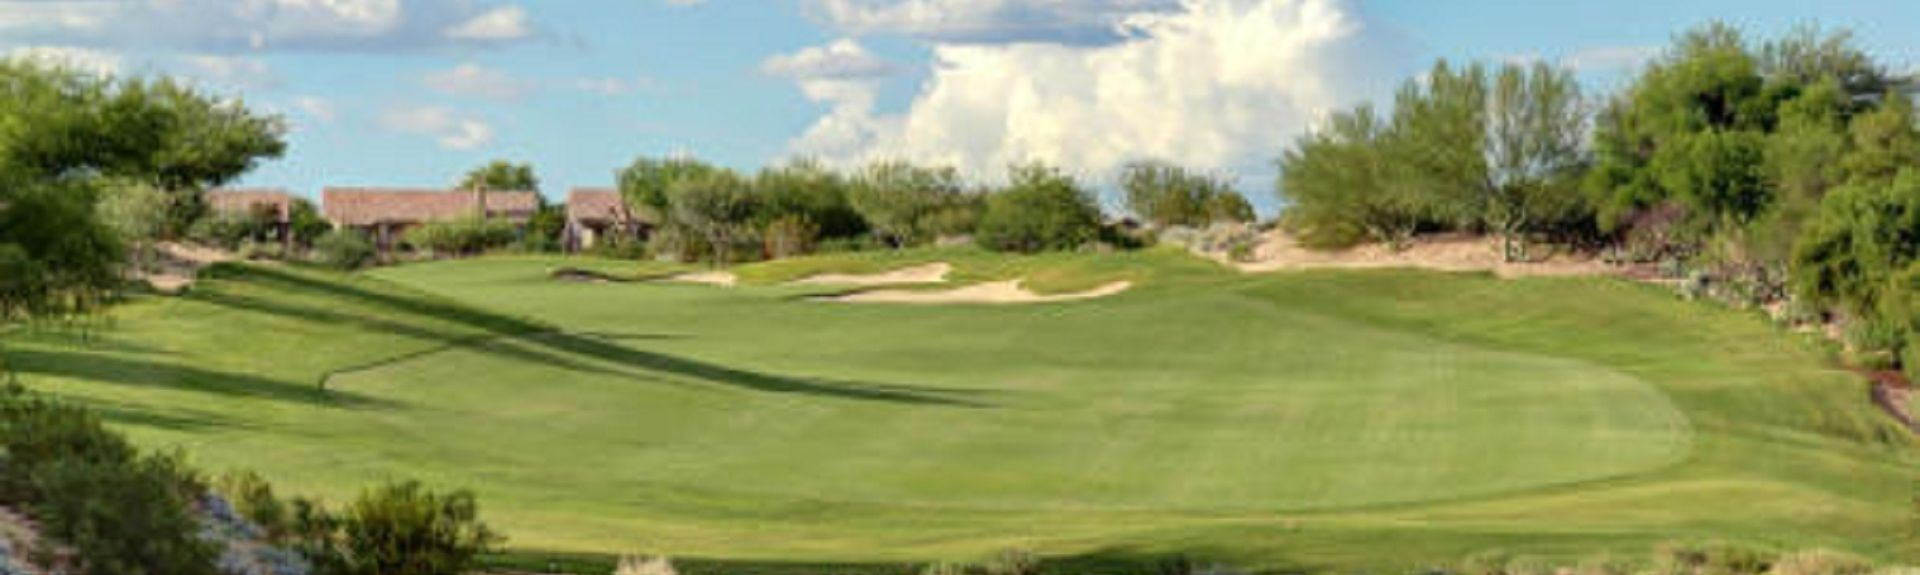 Starr Pass Golf Club, Tucson, AZ, USA